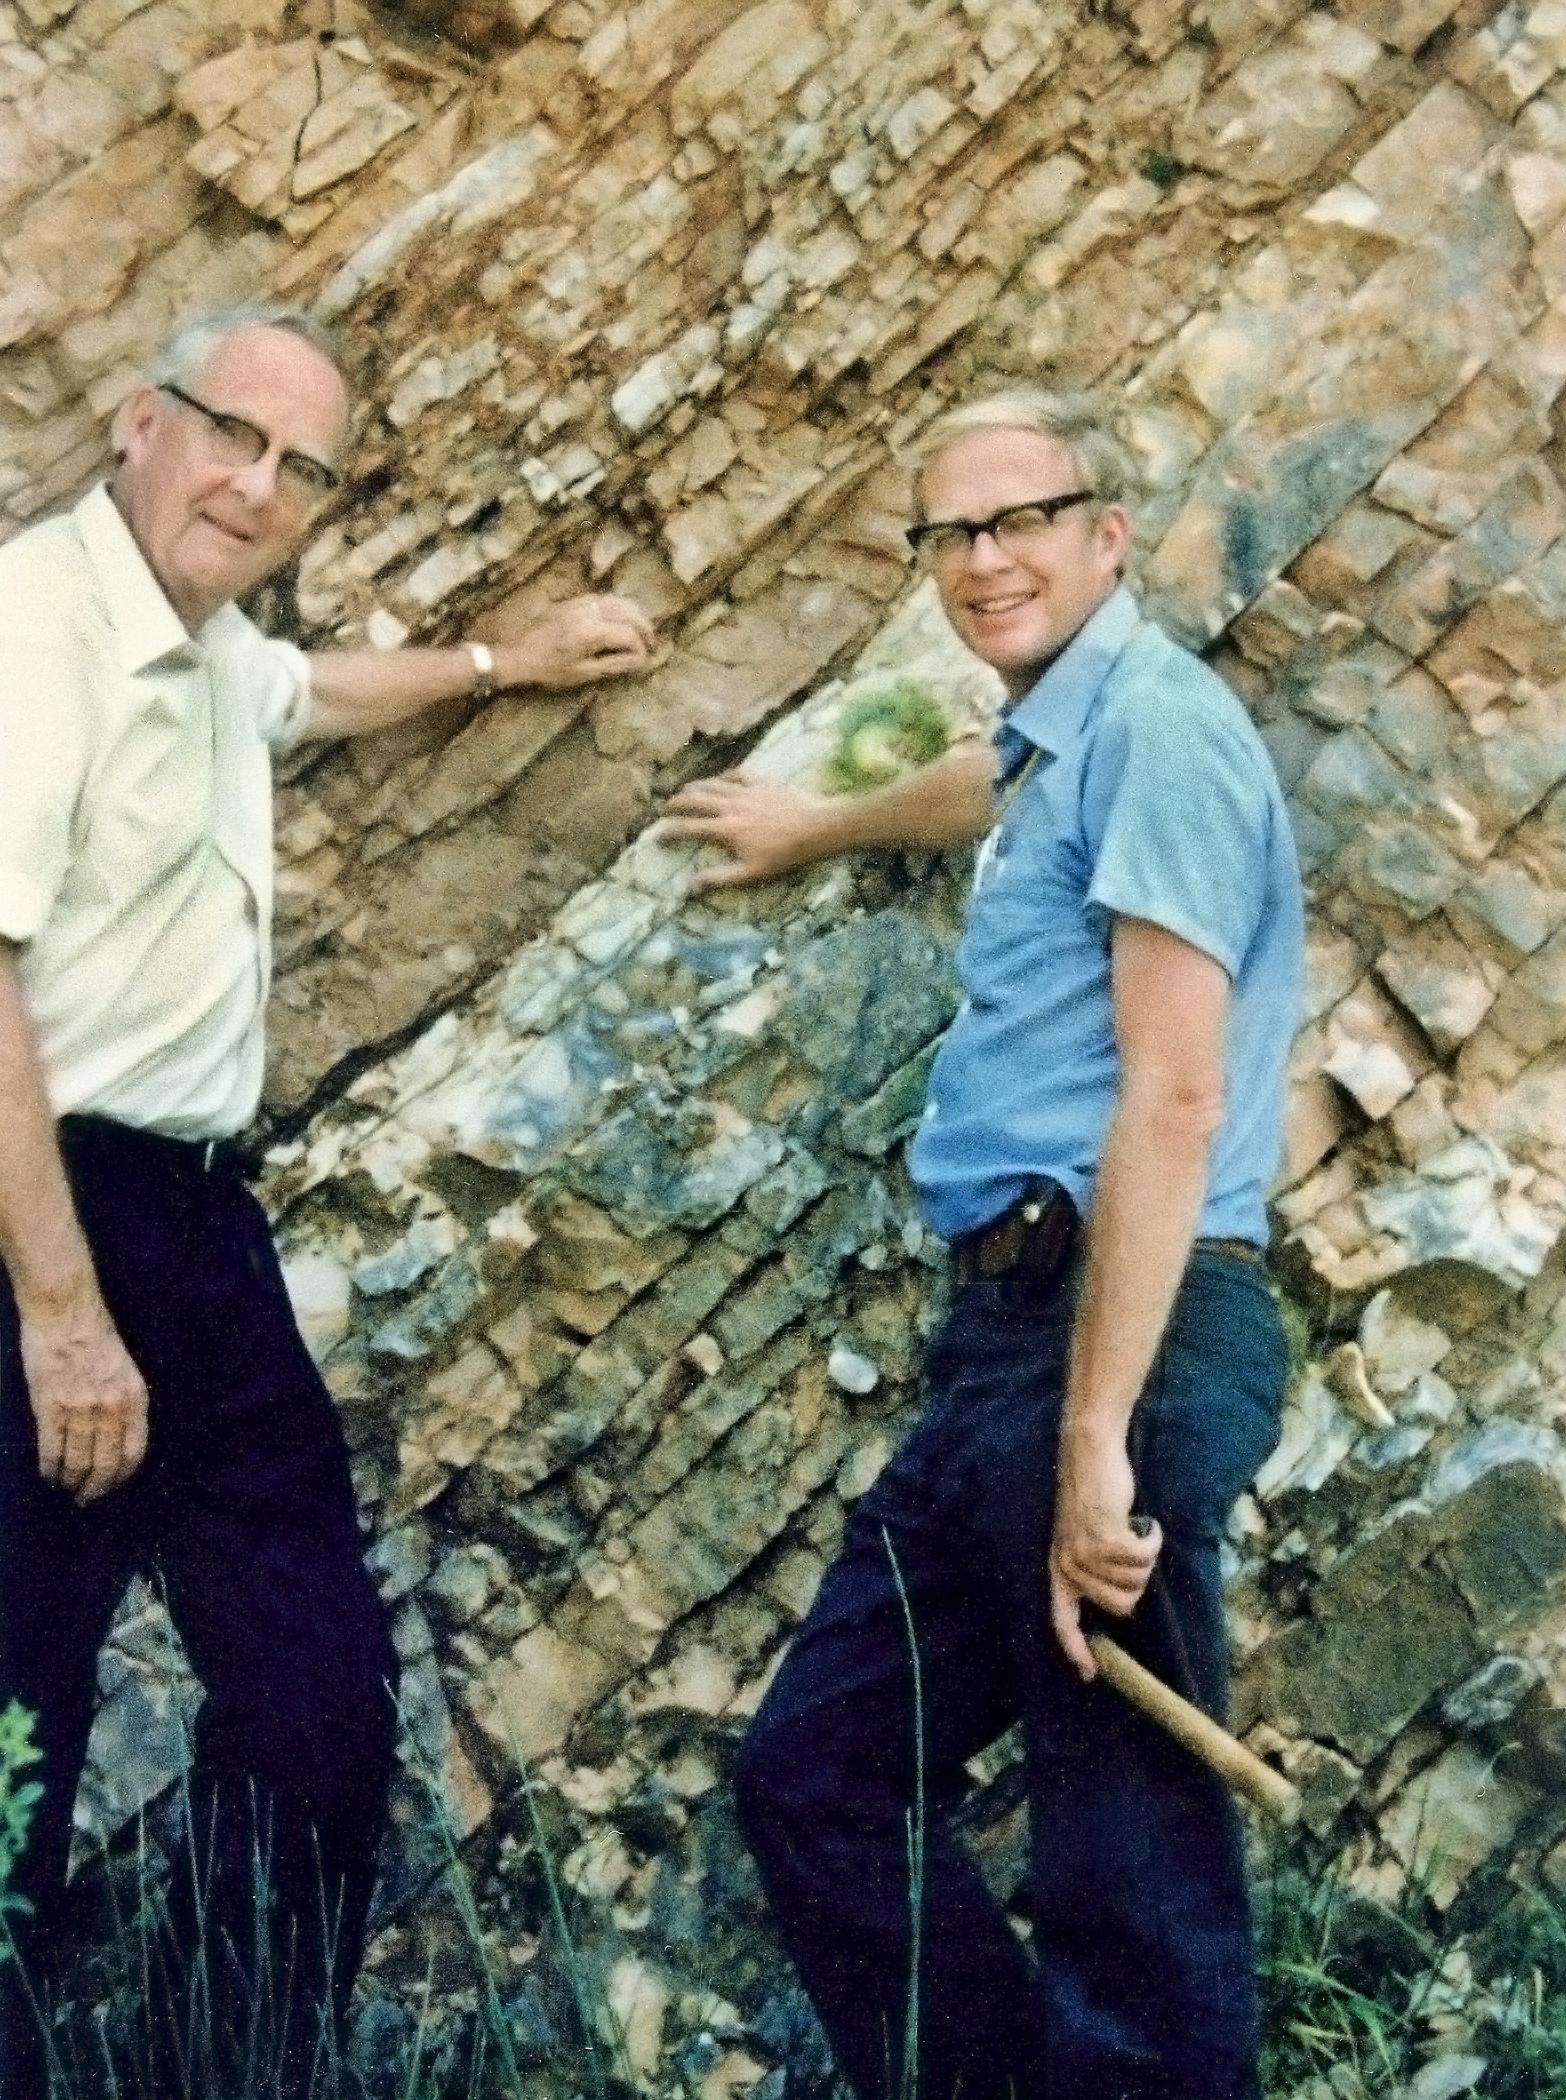 Luis and Walter Alvarez (L-R) at the K-T Boundary in Gubbio, Italy 1981